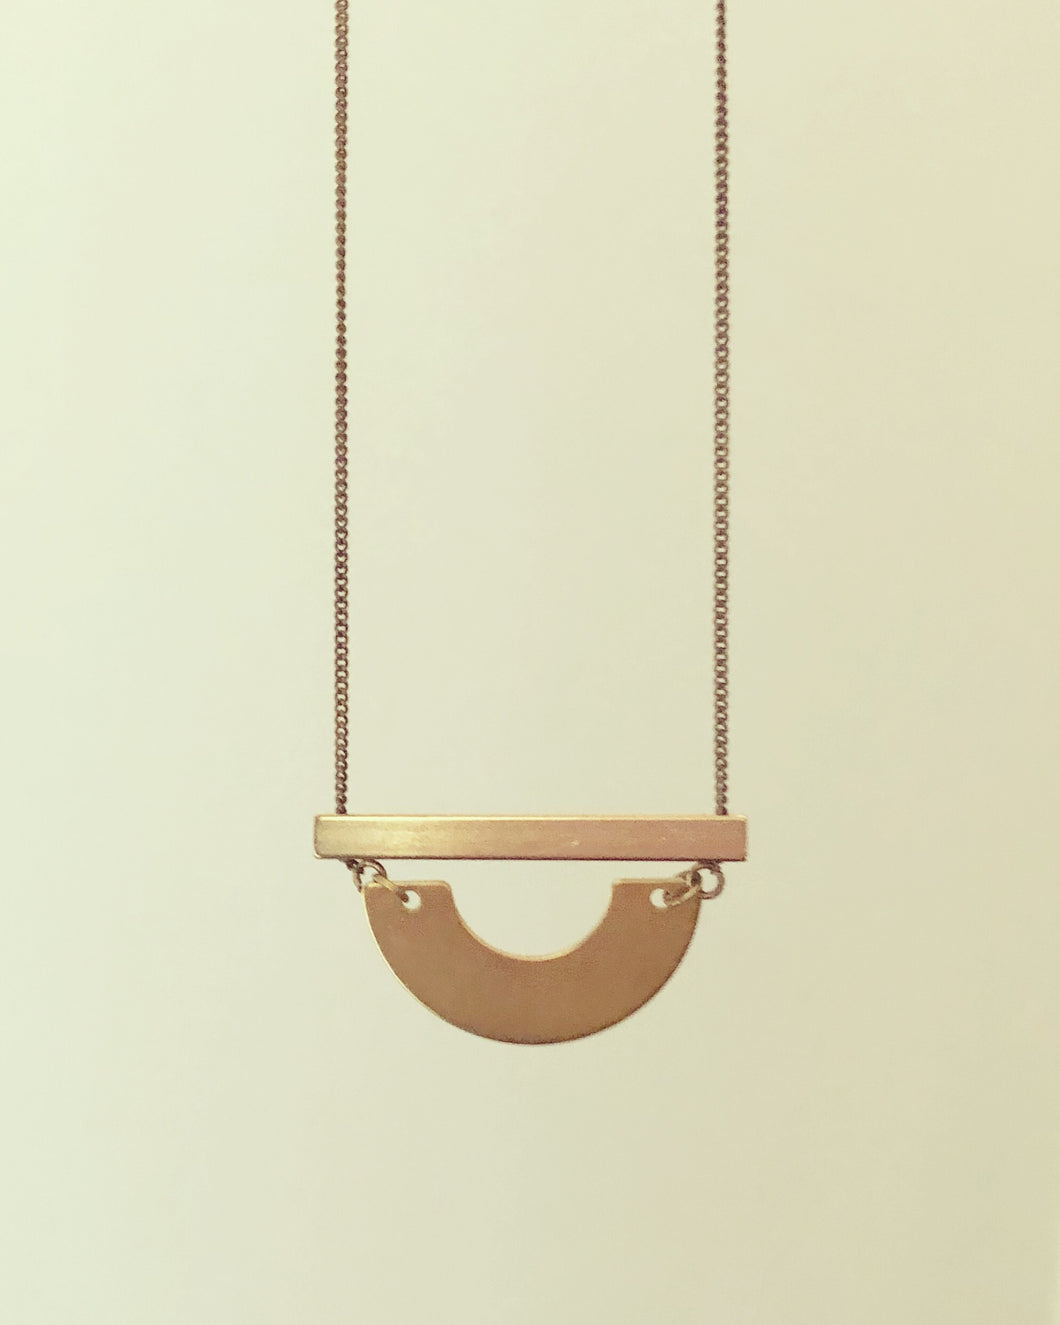 The Mülue Mini Necklace